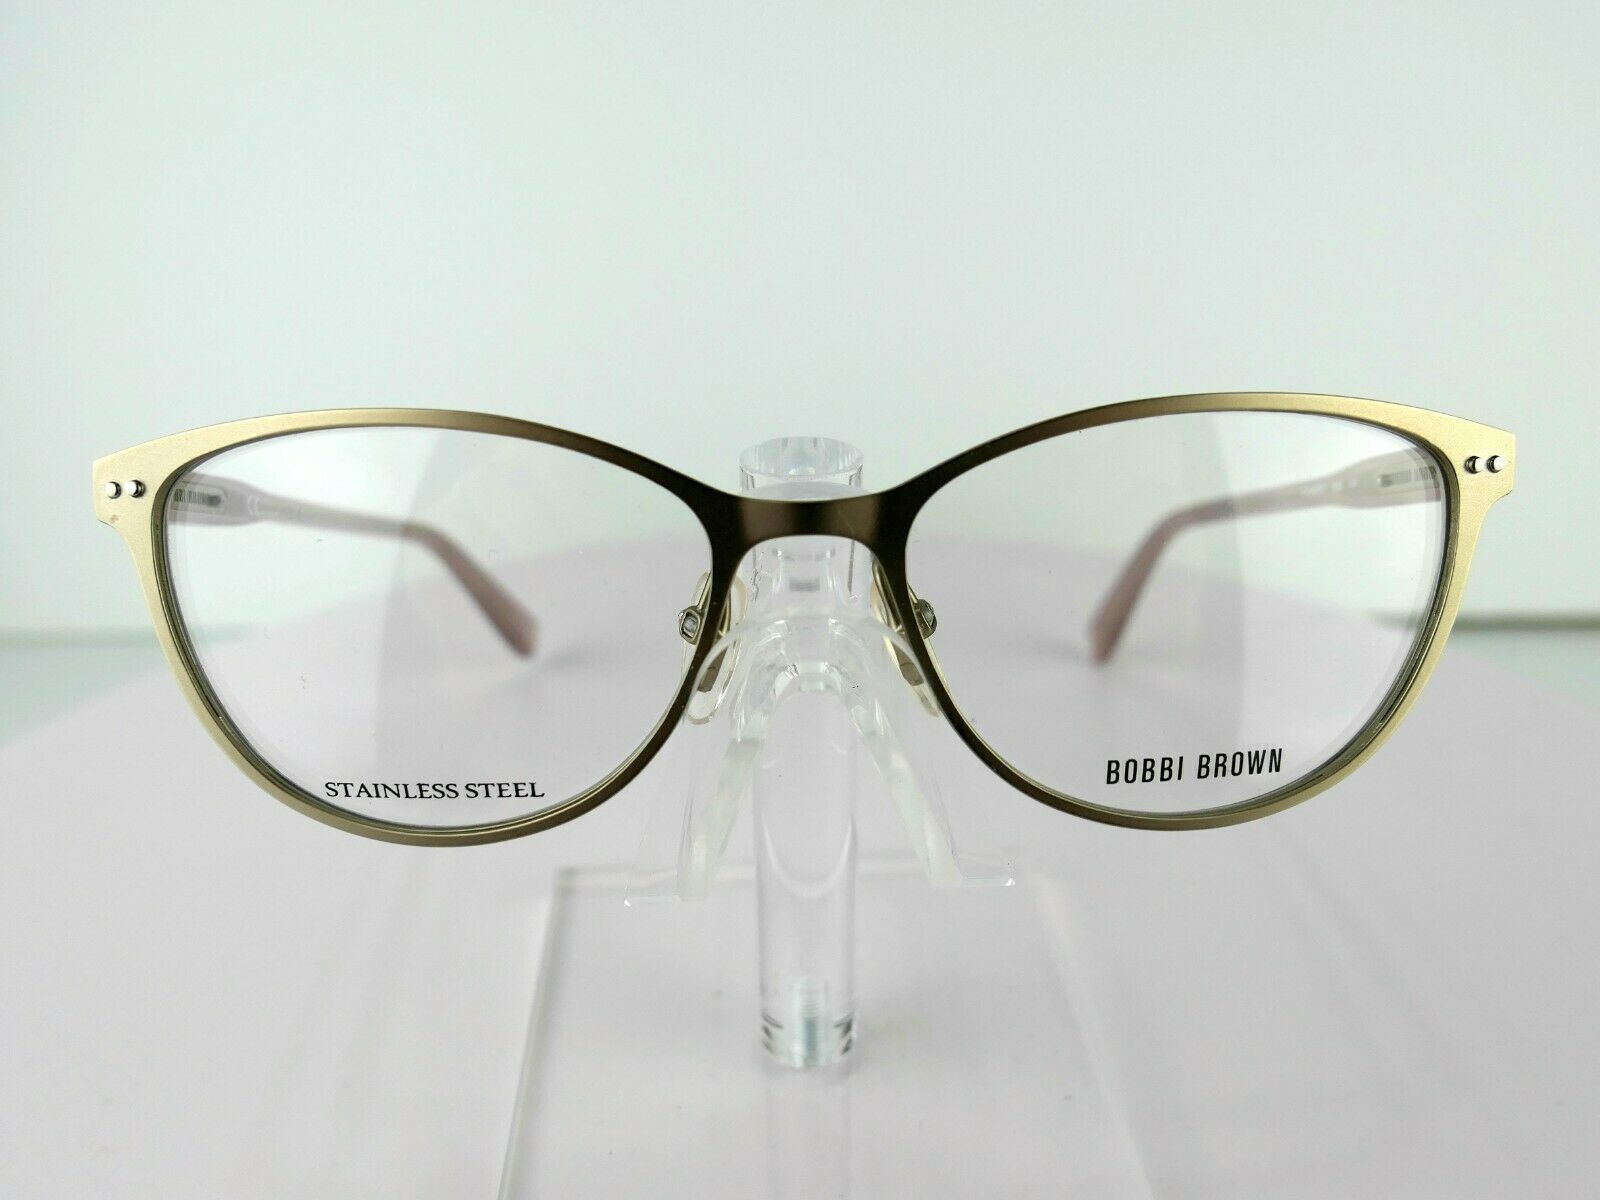 Primary image for Bobbi Brown THE MERYL (B6B) MATT SILVER W/ CASE 53 x 16 140 Eyeglass Frames